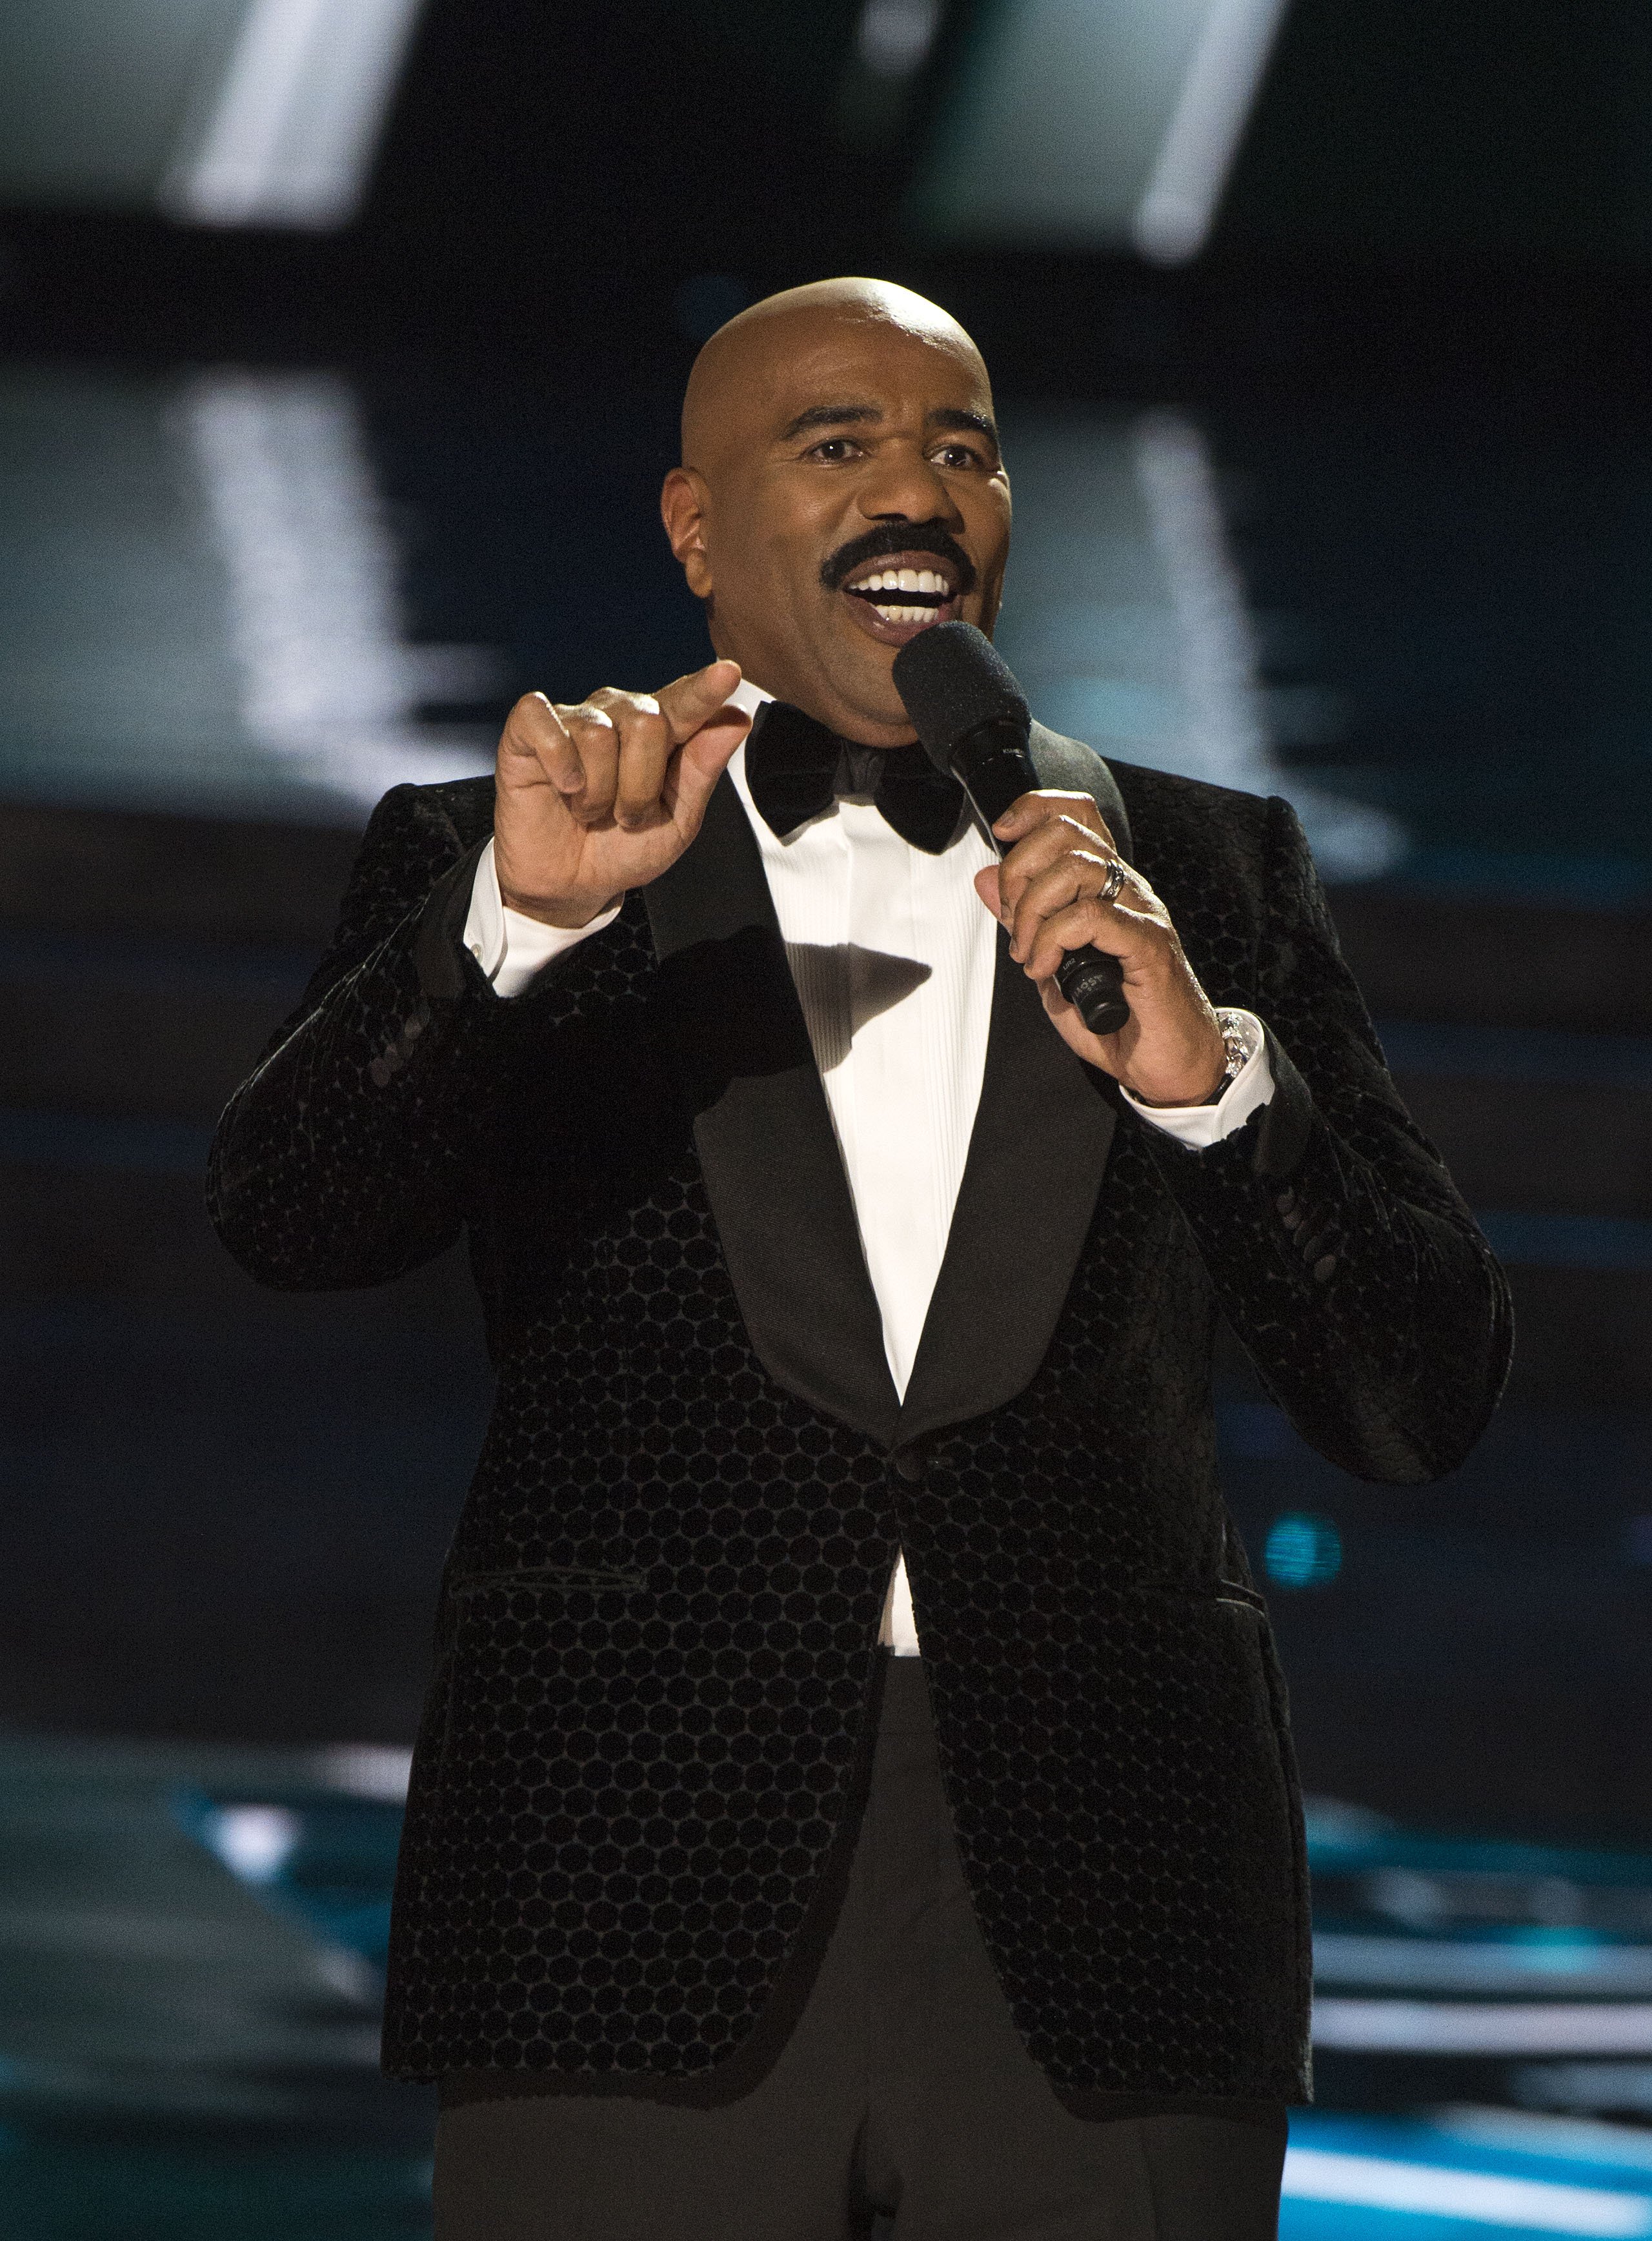 Host Steve Harvey performs  during The 2015 MISS UNIVERSE Show at Planet Hollywood Resort & Casino, in Las Vegas, California, on December 20, 2015.